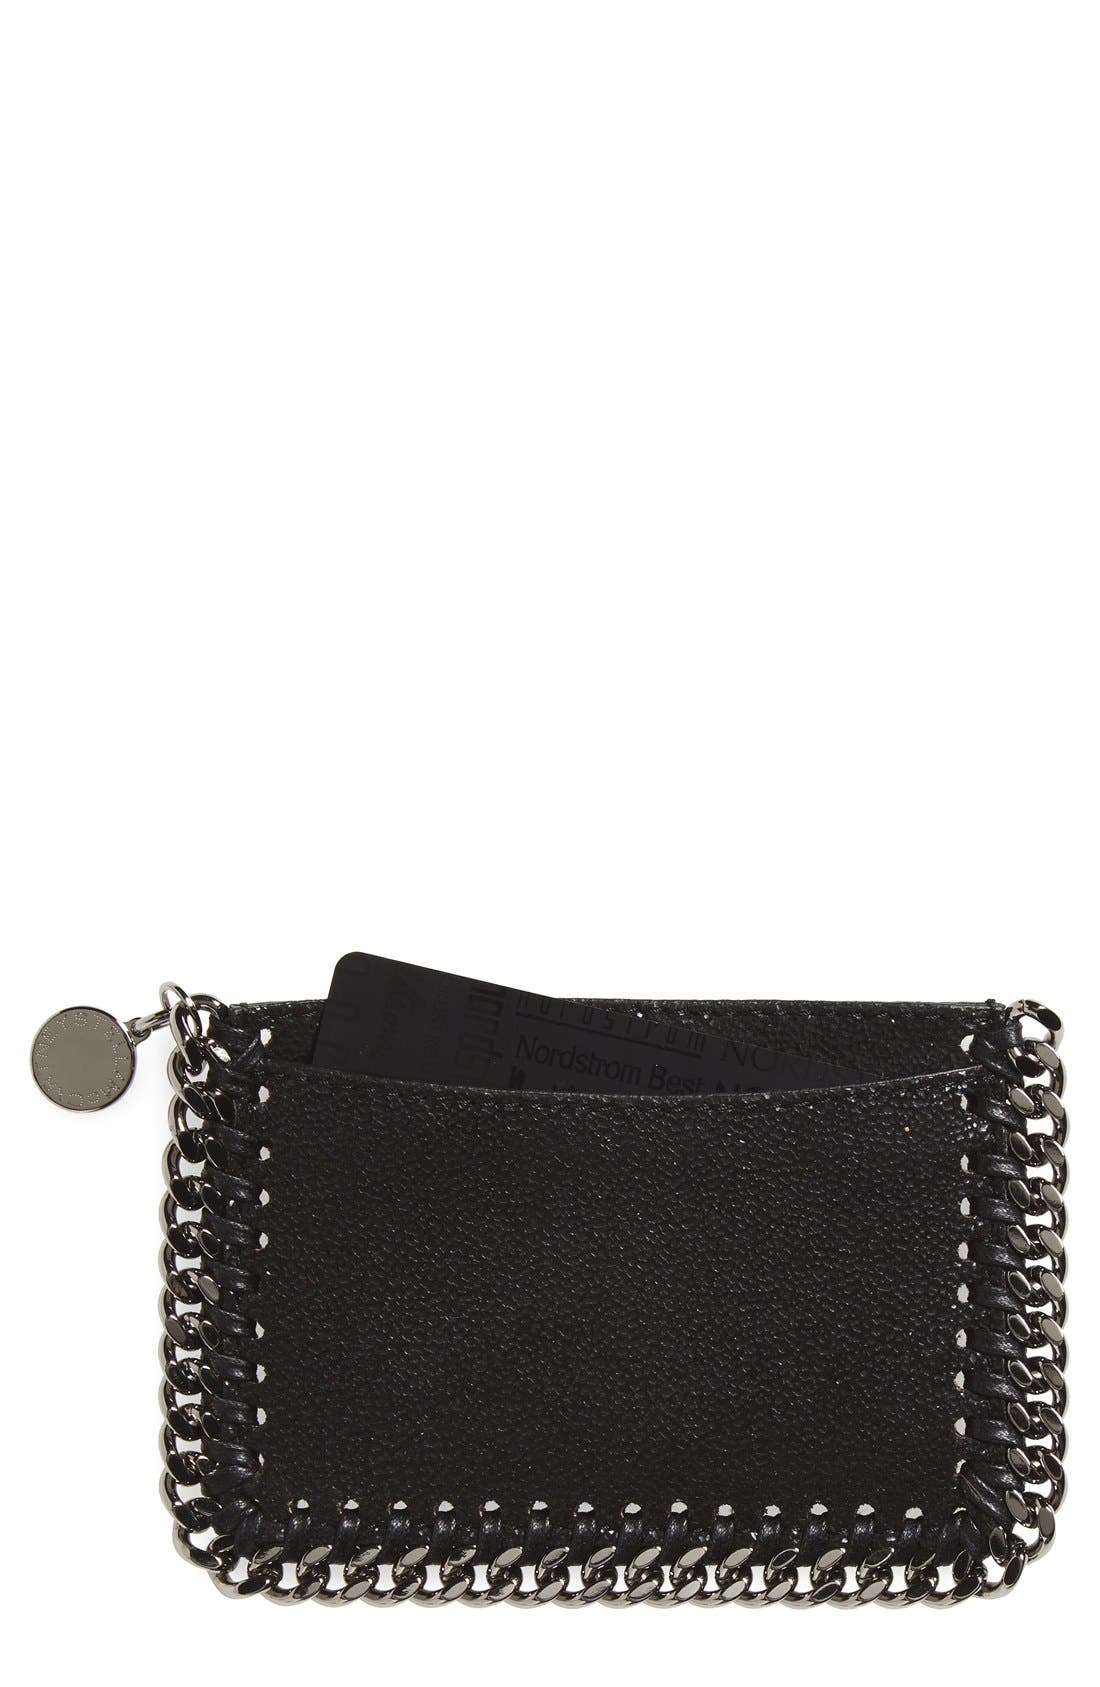 'Falabella - Shaggy Deer' Card Case,                         Main,                         color, BLACK